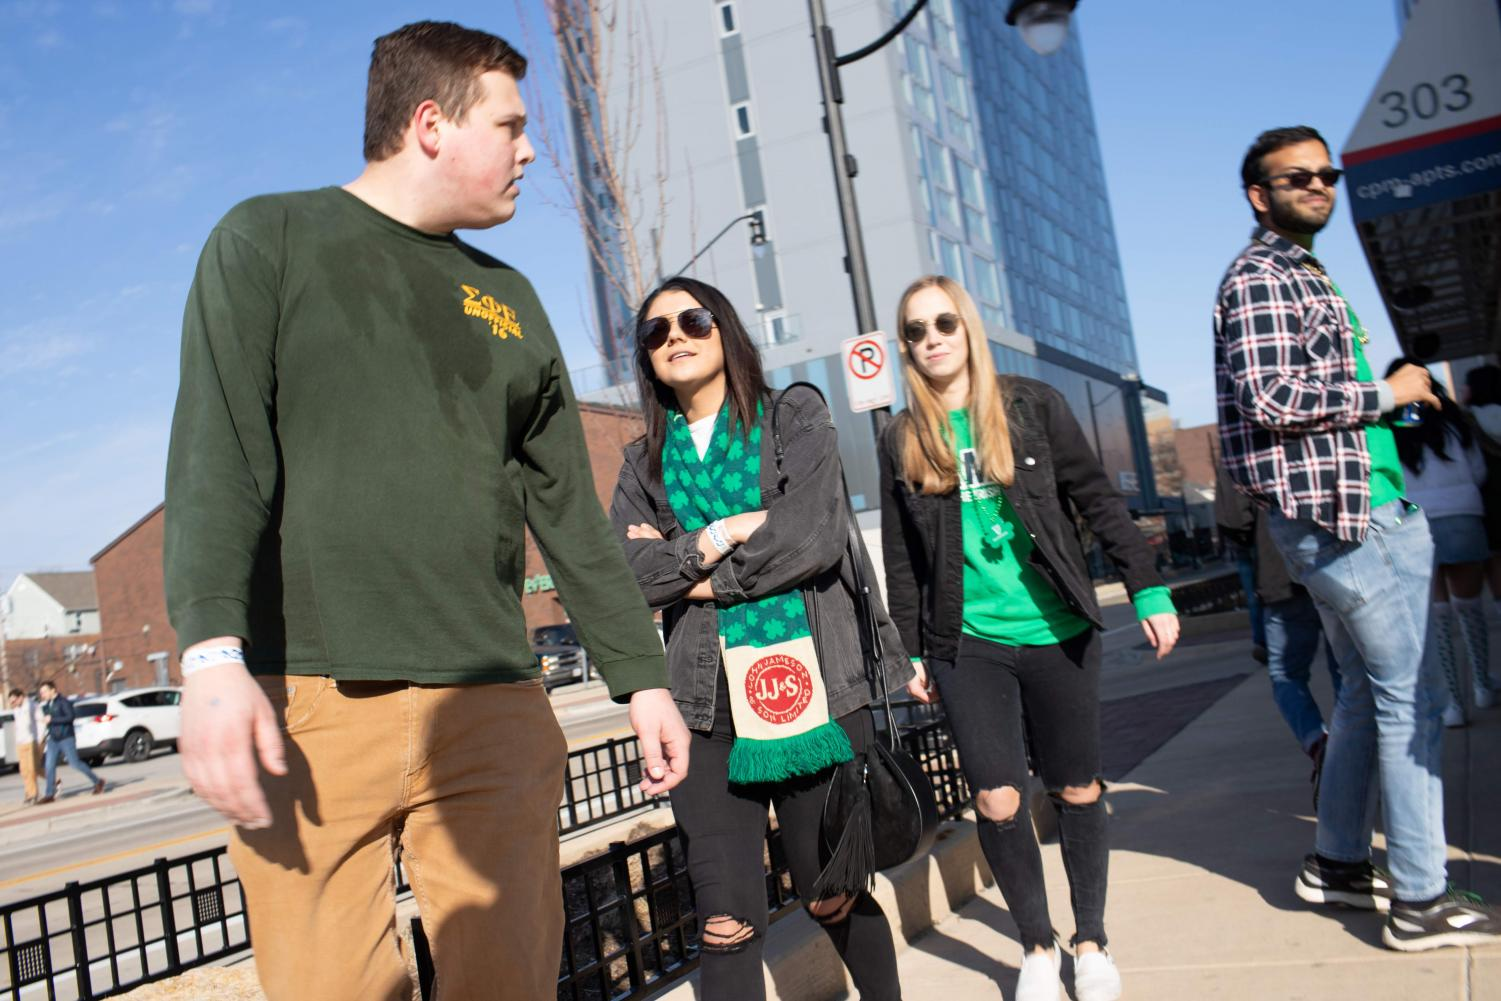 Students+celebrate+23rd+annual+Unofficial+St.+Patrick%27s+Day